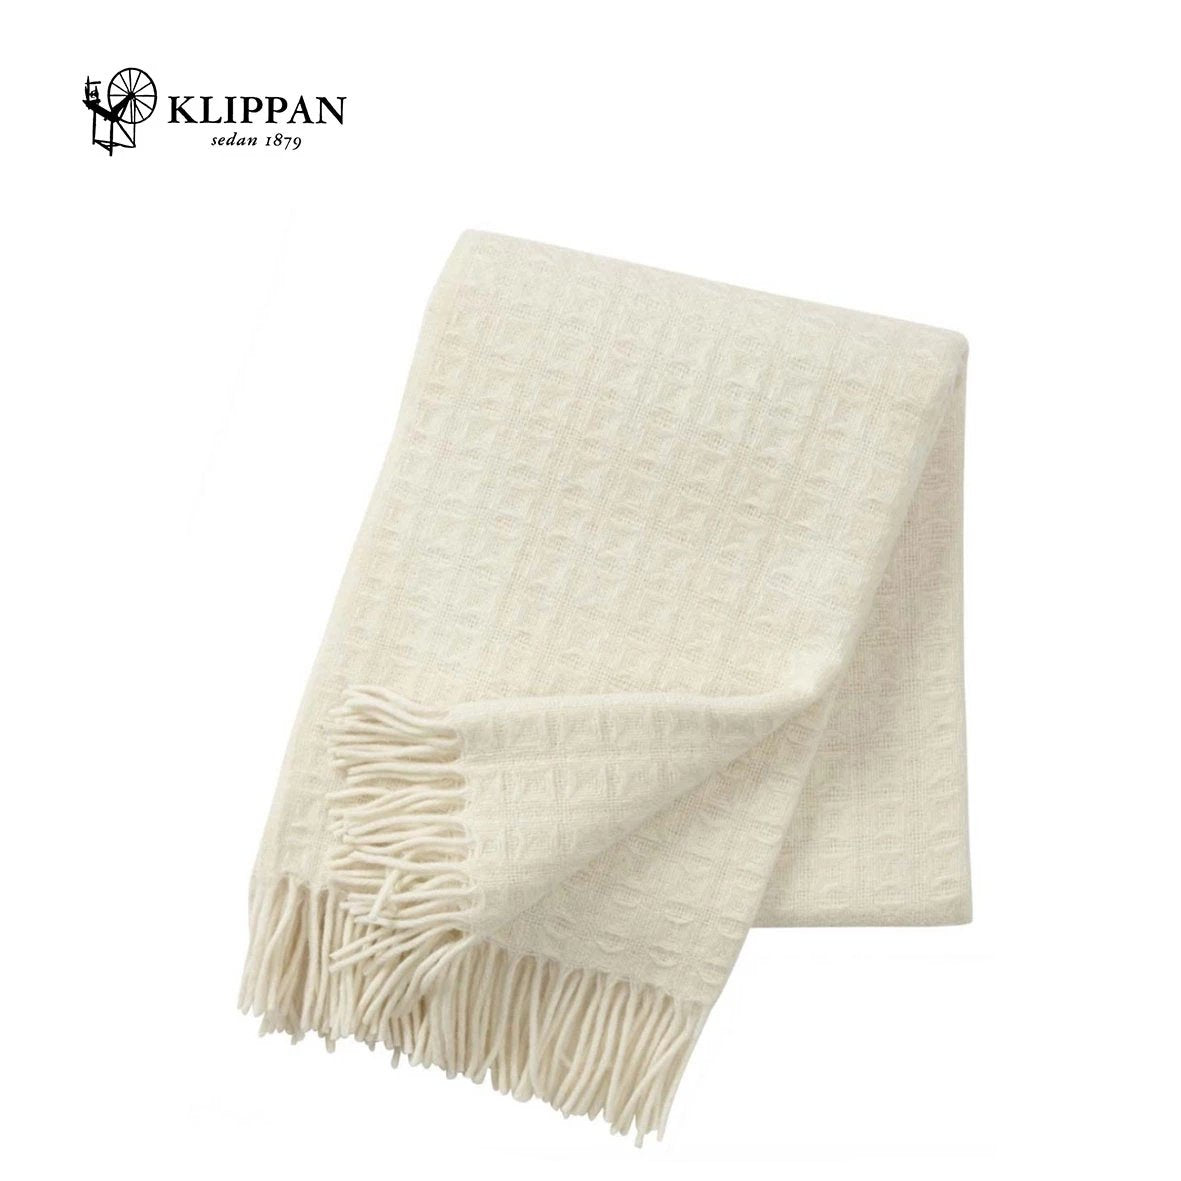 KLIPPAN Twist Woollen Throw 130x200cm